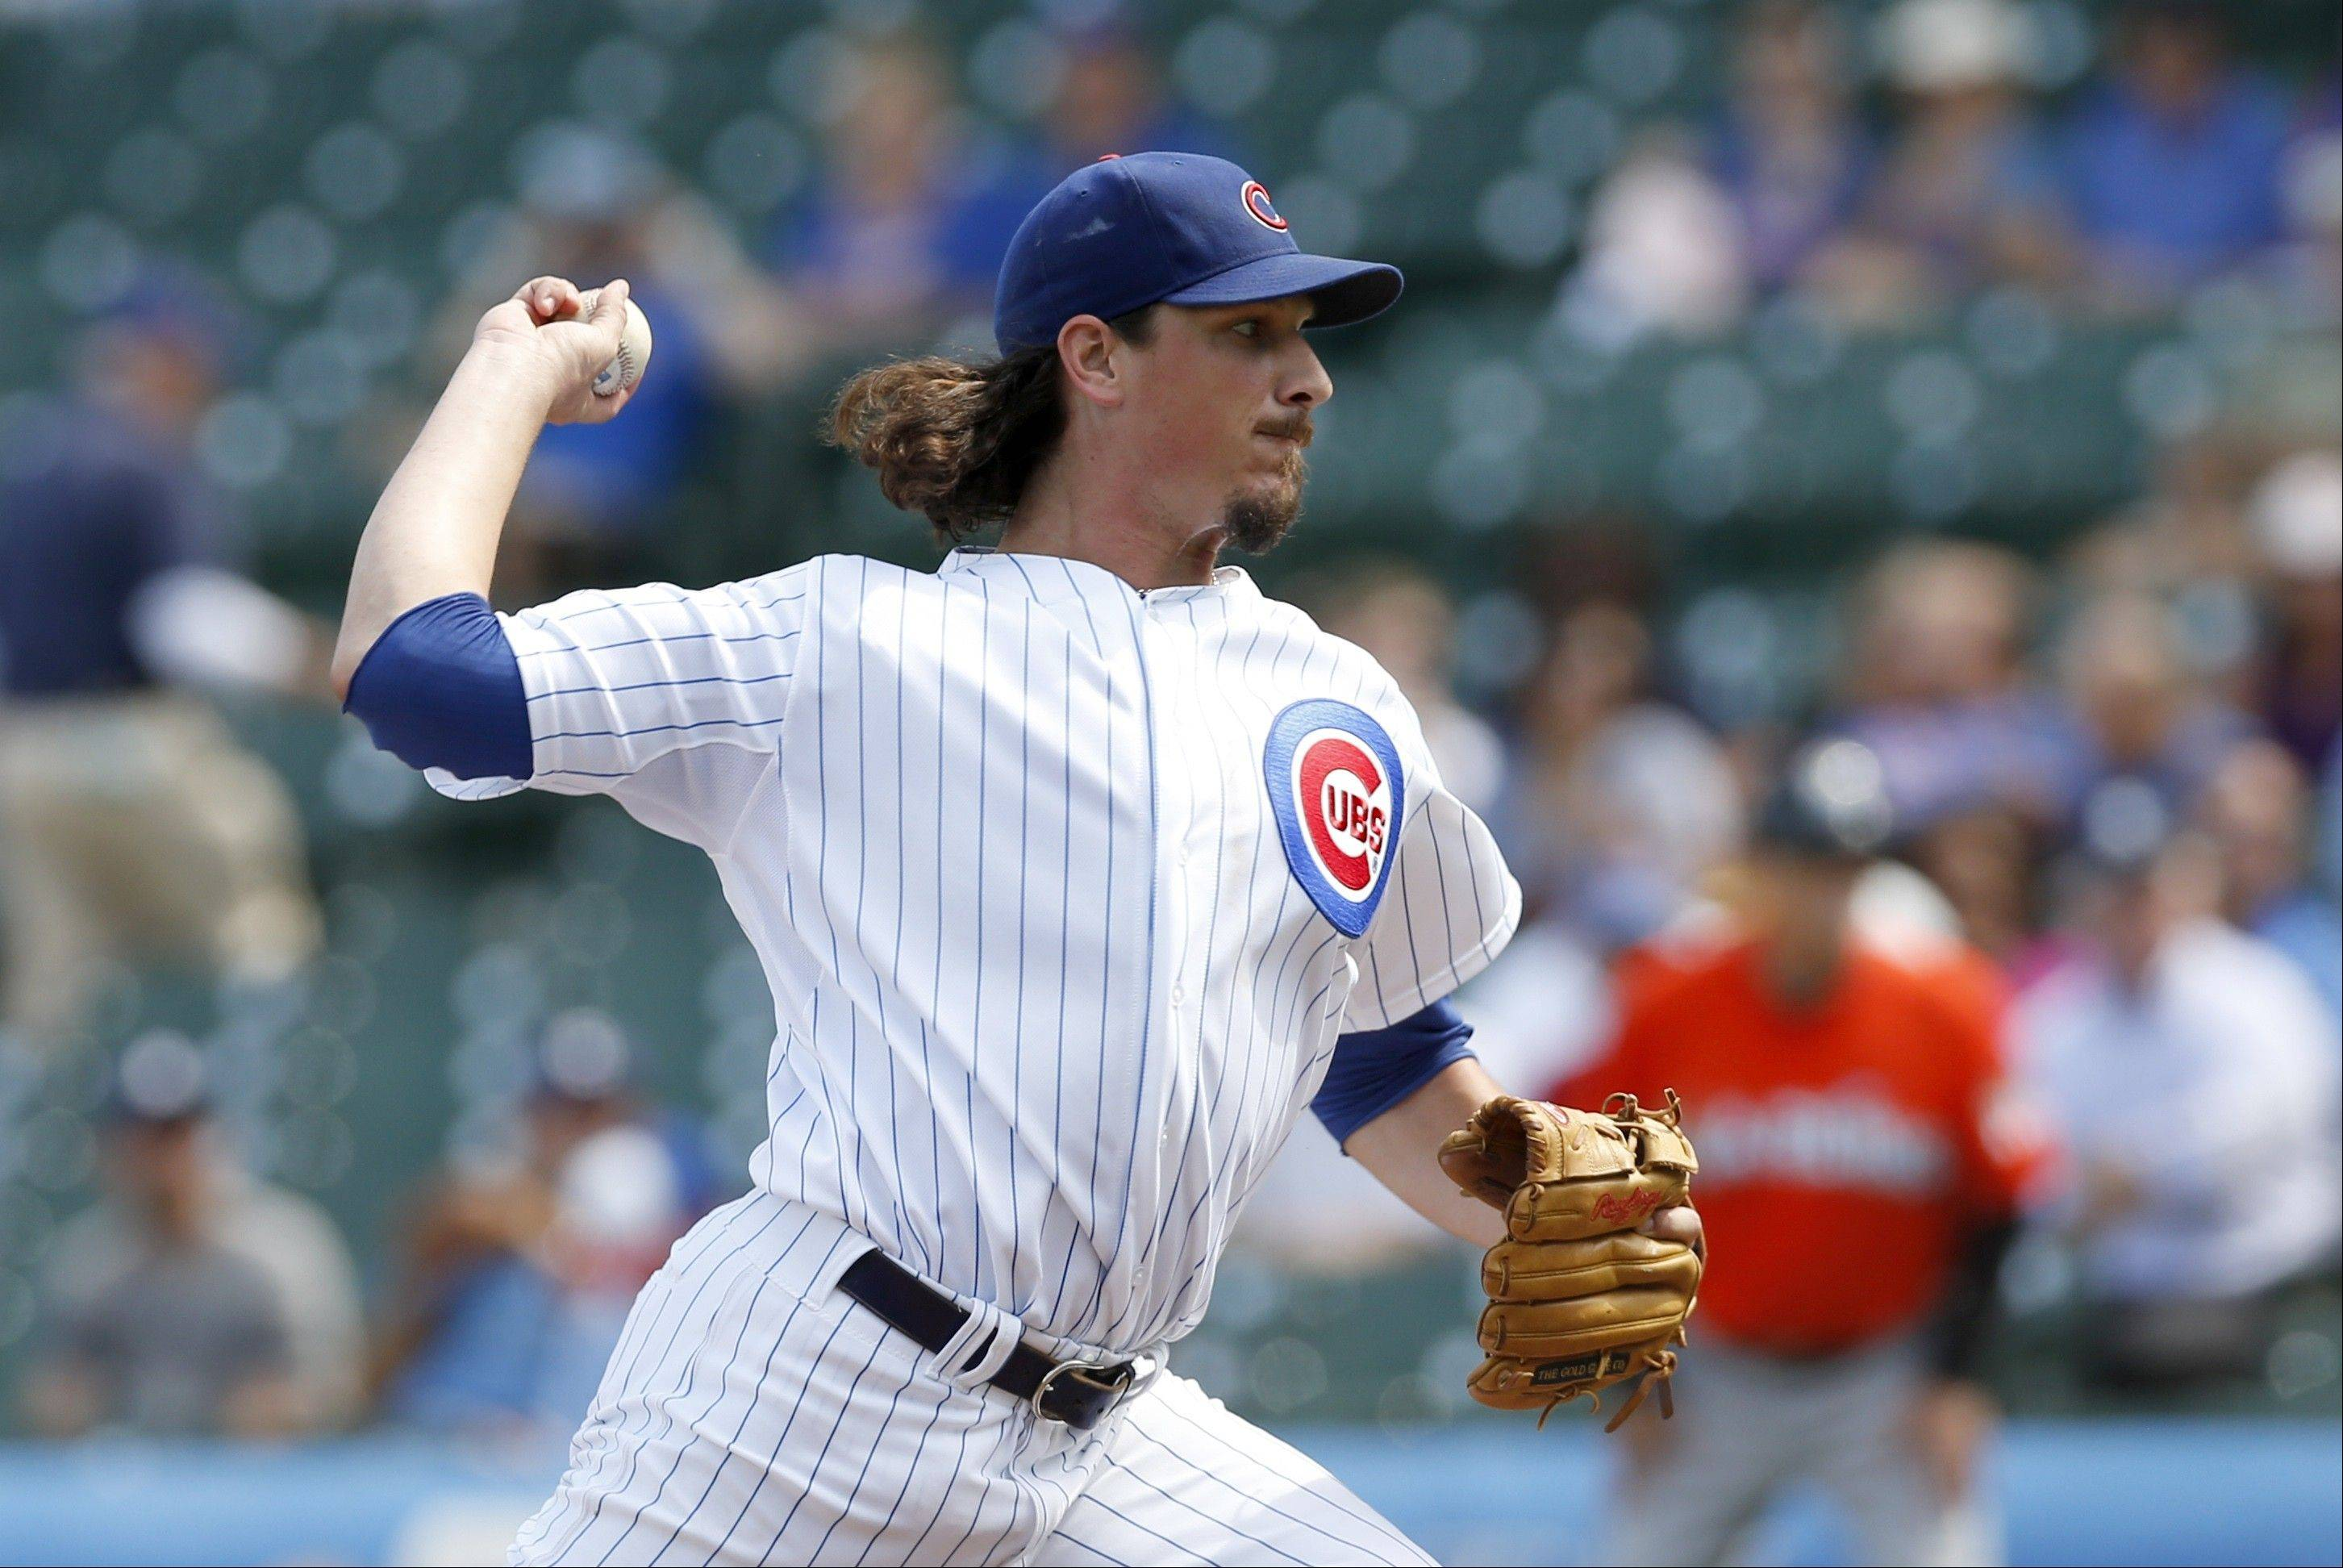 Jeff Samardzija has thrown 189 innings on the season.